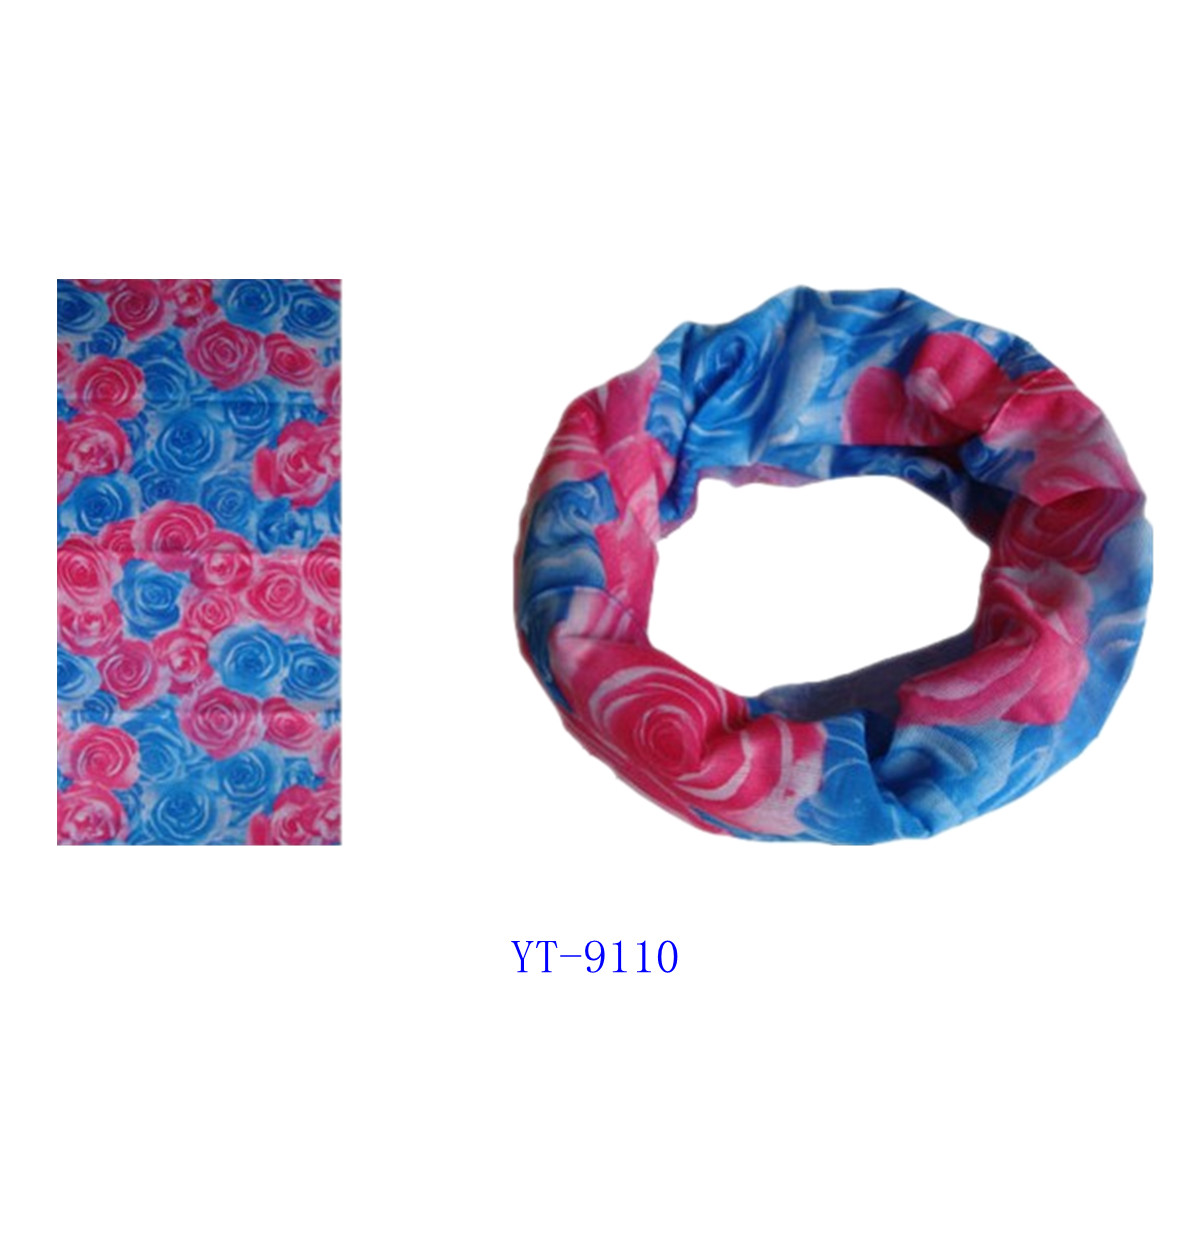 Pink and Blue Rose Flower Design Bandana (YT-9110)